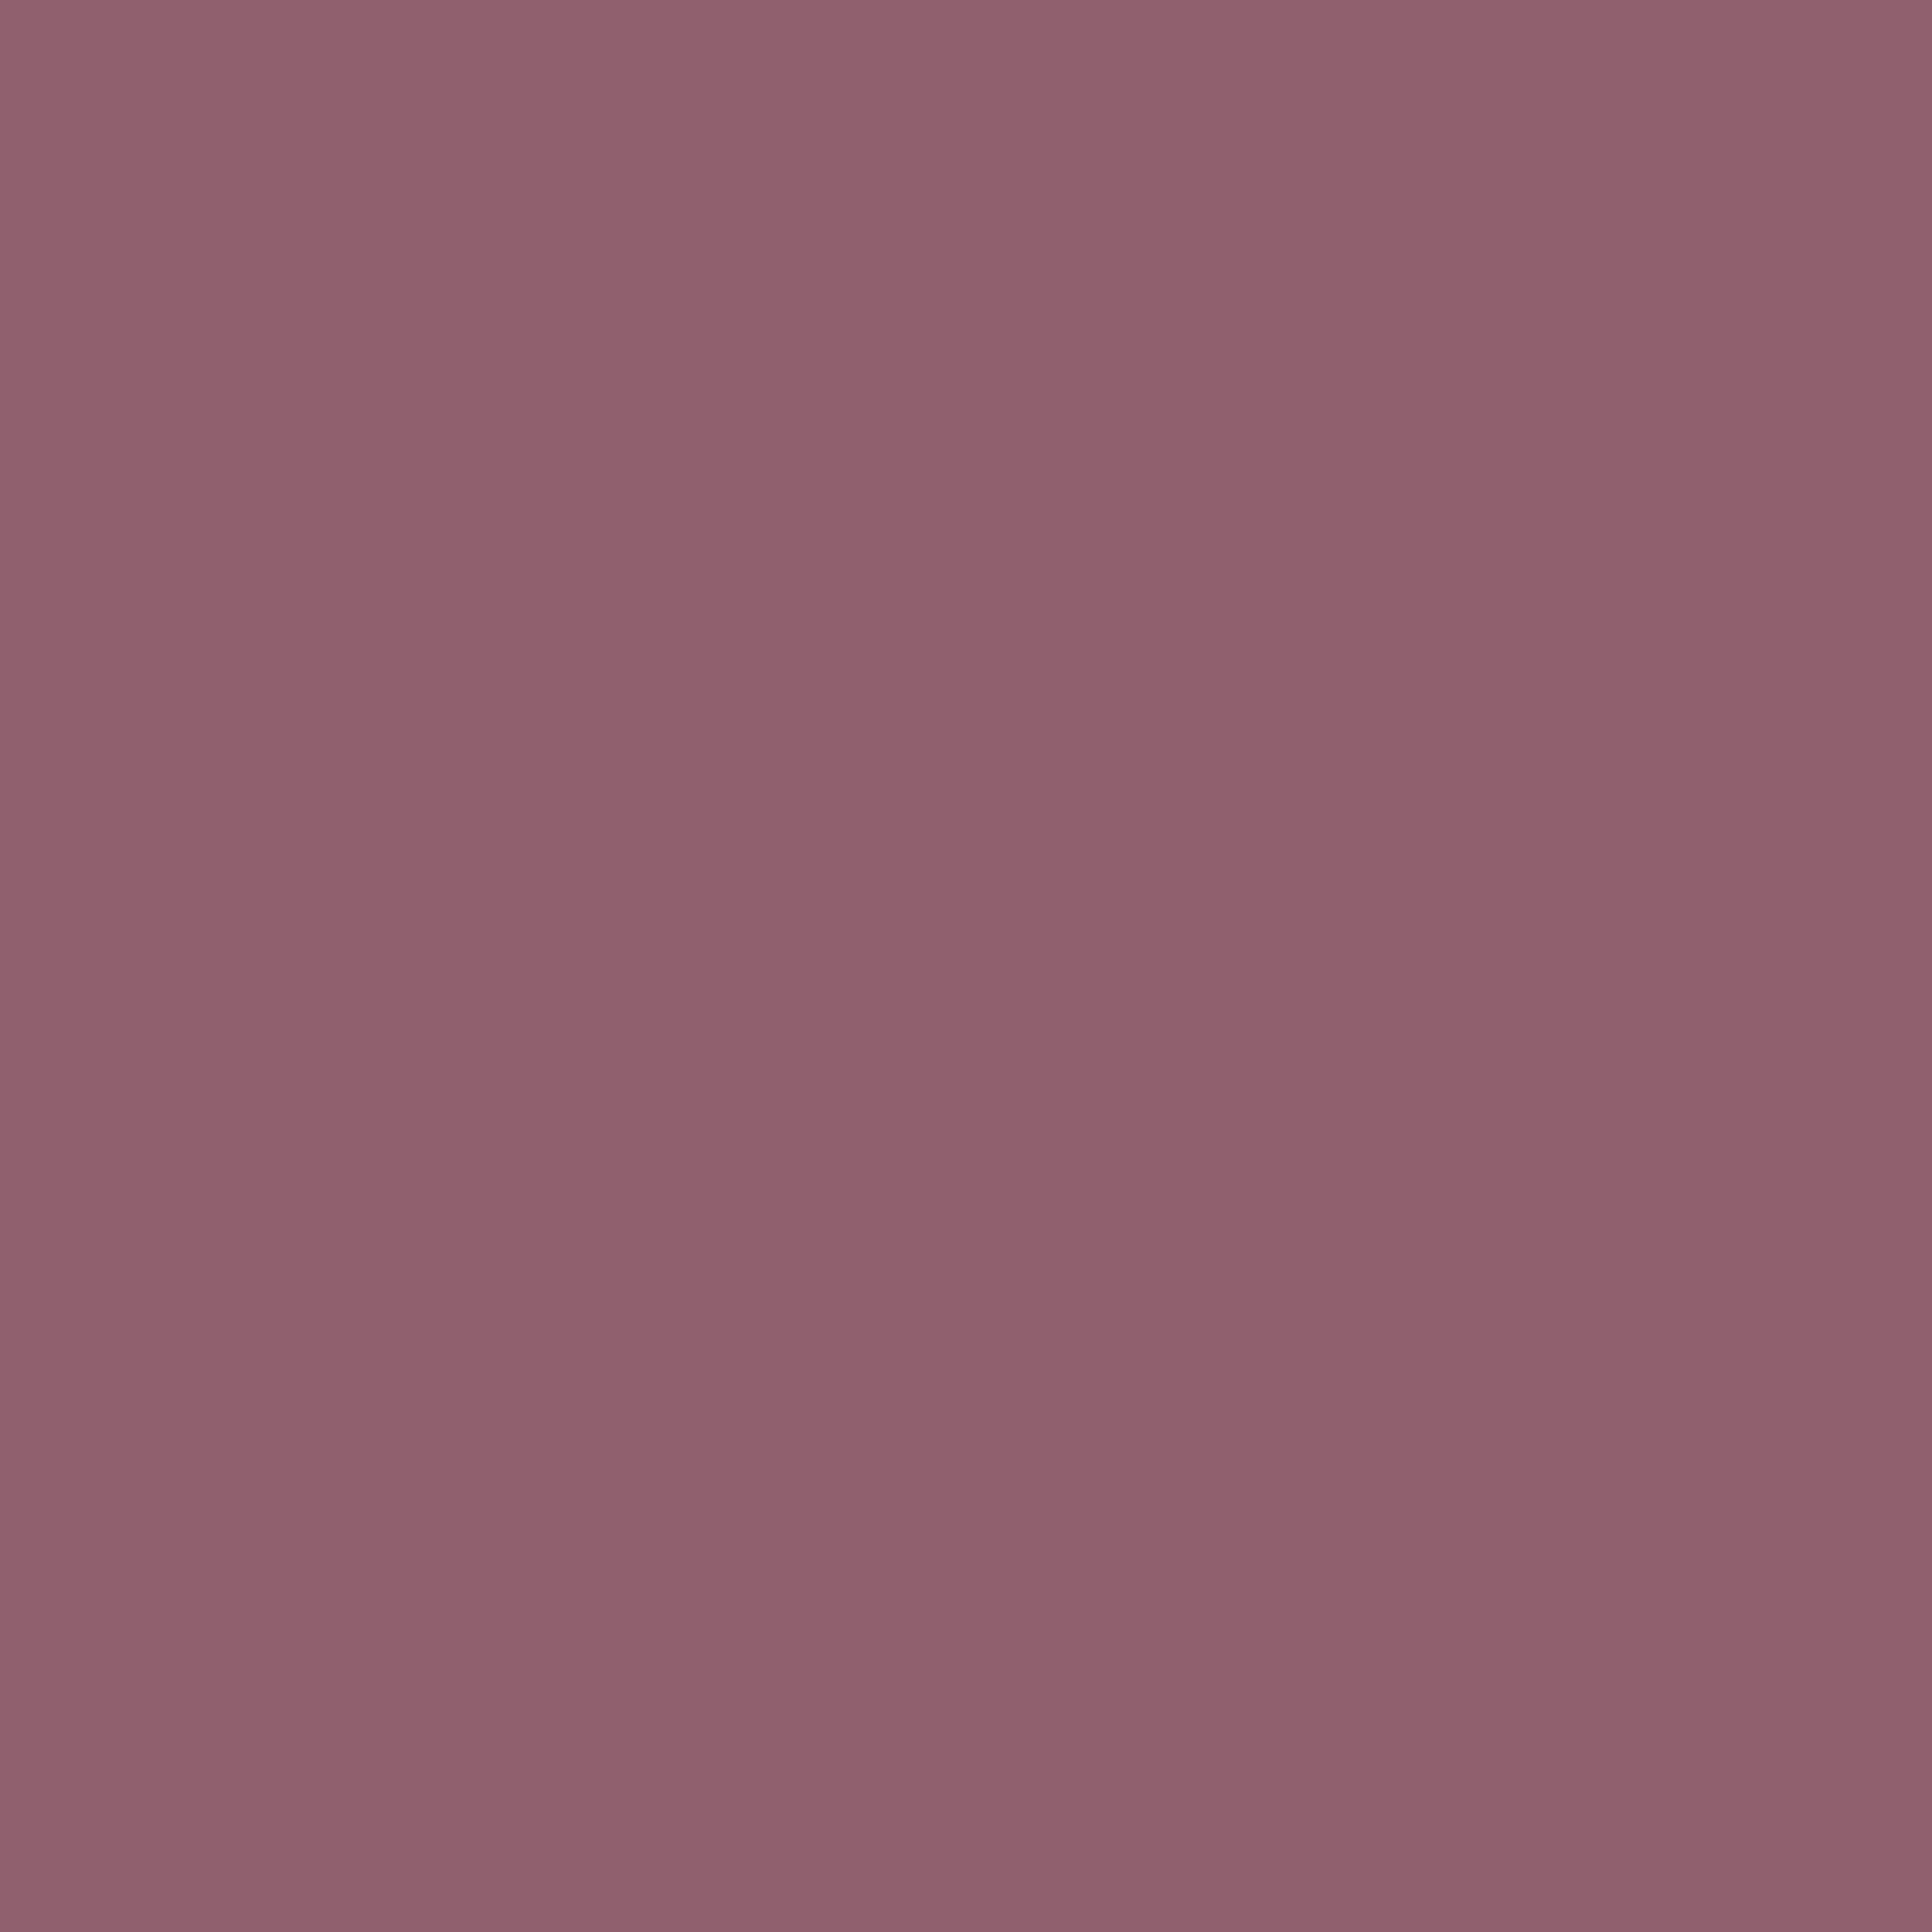 3600x3600 Mauve Taupe Solid Color Background